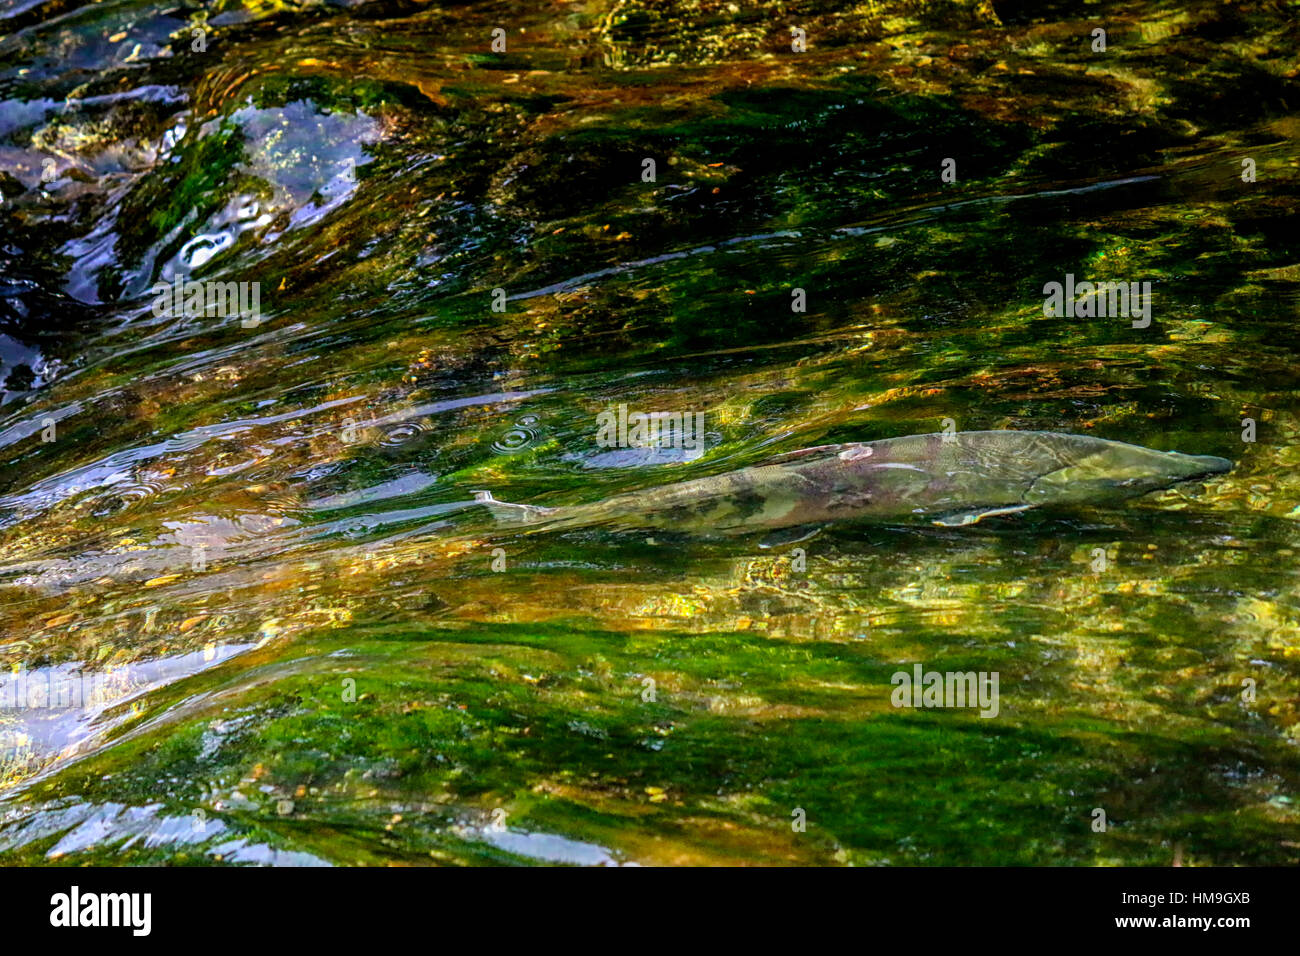 Wildlife in Vancouver BC - Pacific salmon fast swimming in the river, Mission 3. - Stock Image